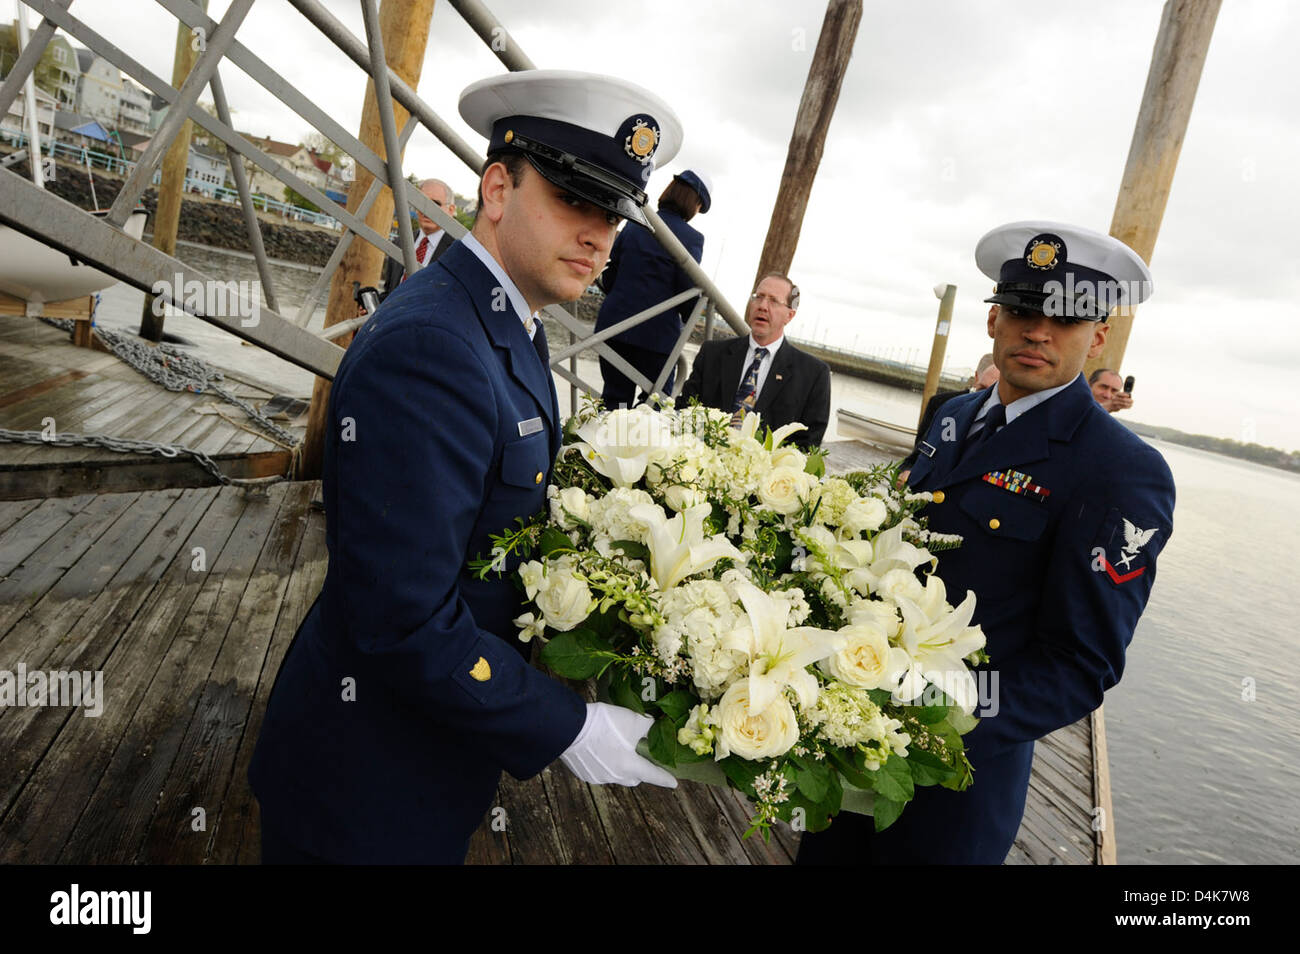 Laying a wreath in honor of William Vogt - Stock Image